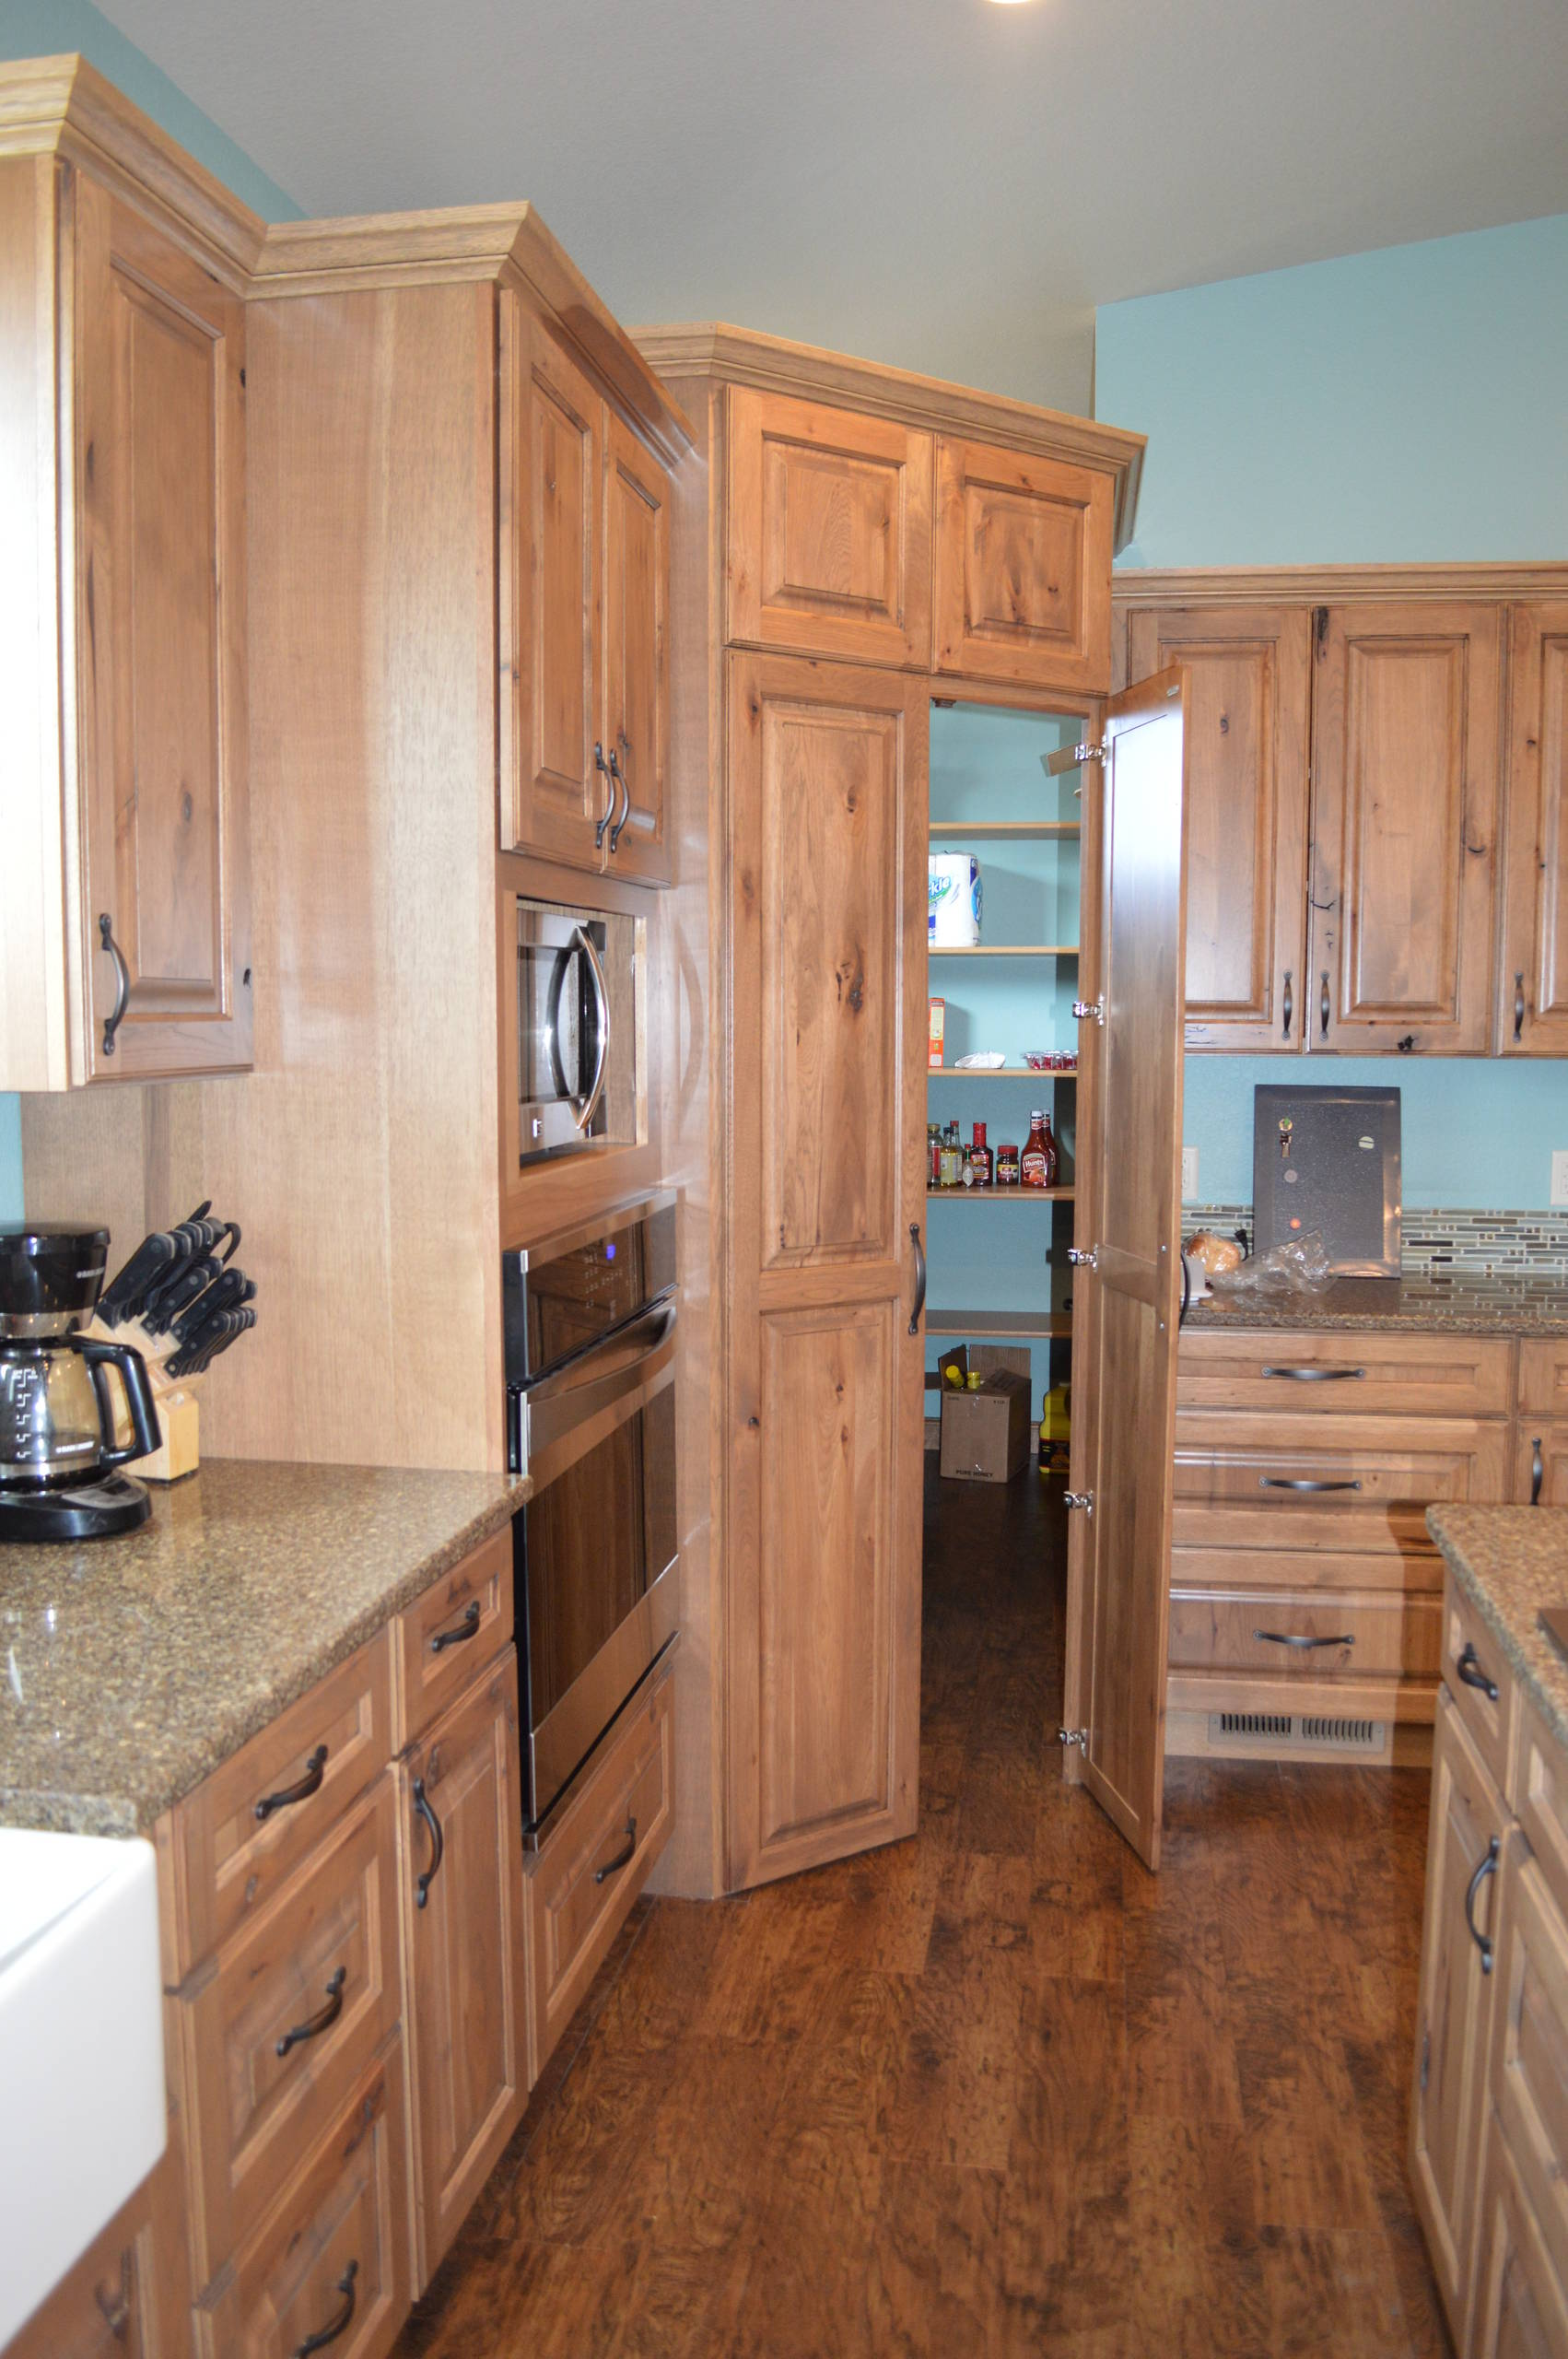 75 Beautiful Farmhouse Kitchen With Light Wood Cabinets Pictures Ideas June 2021 Houzz